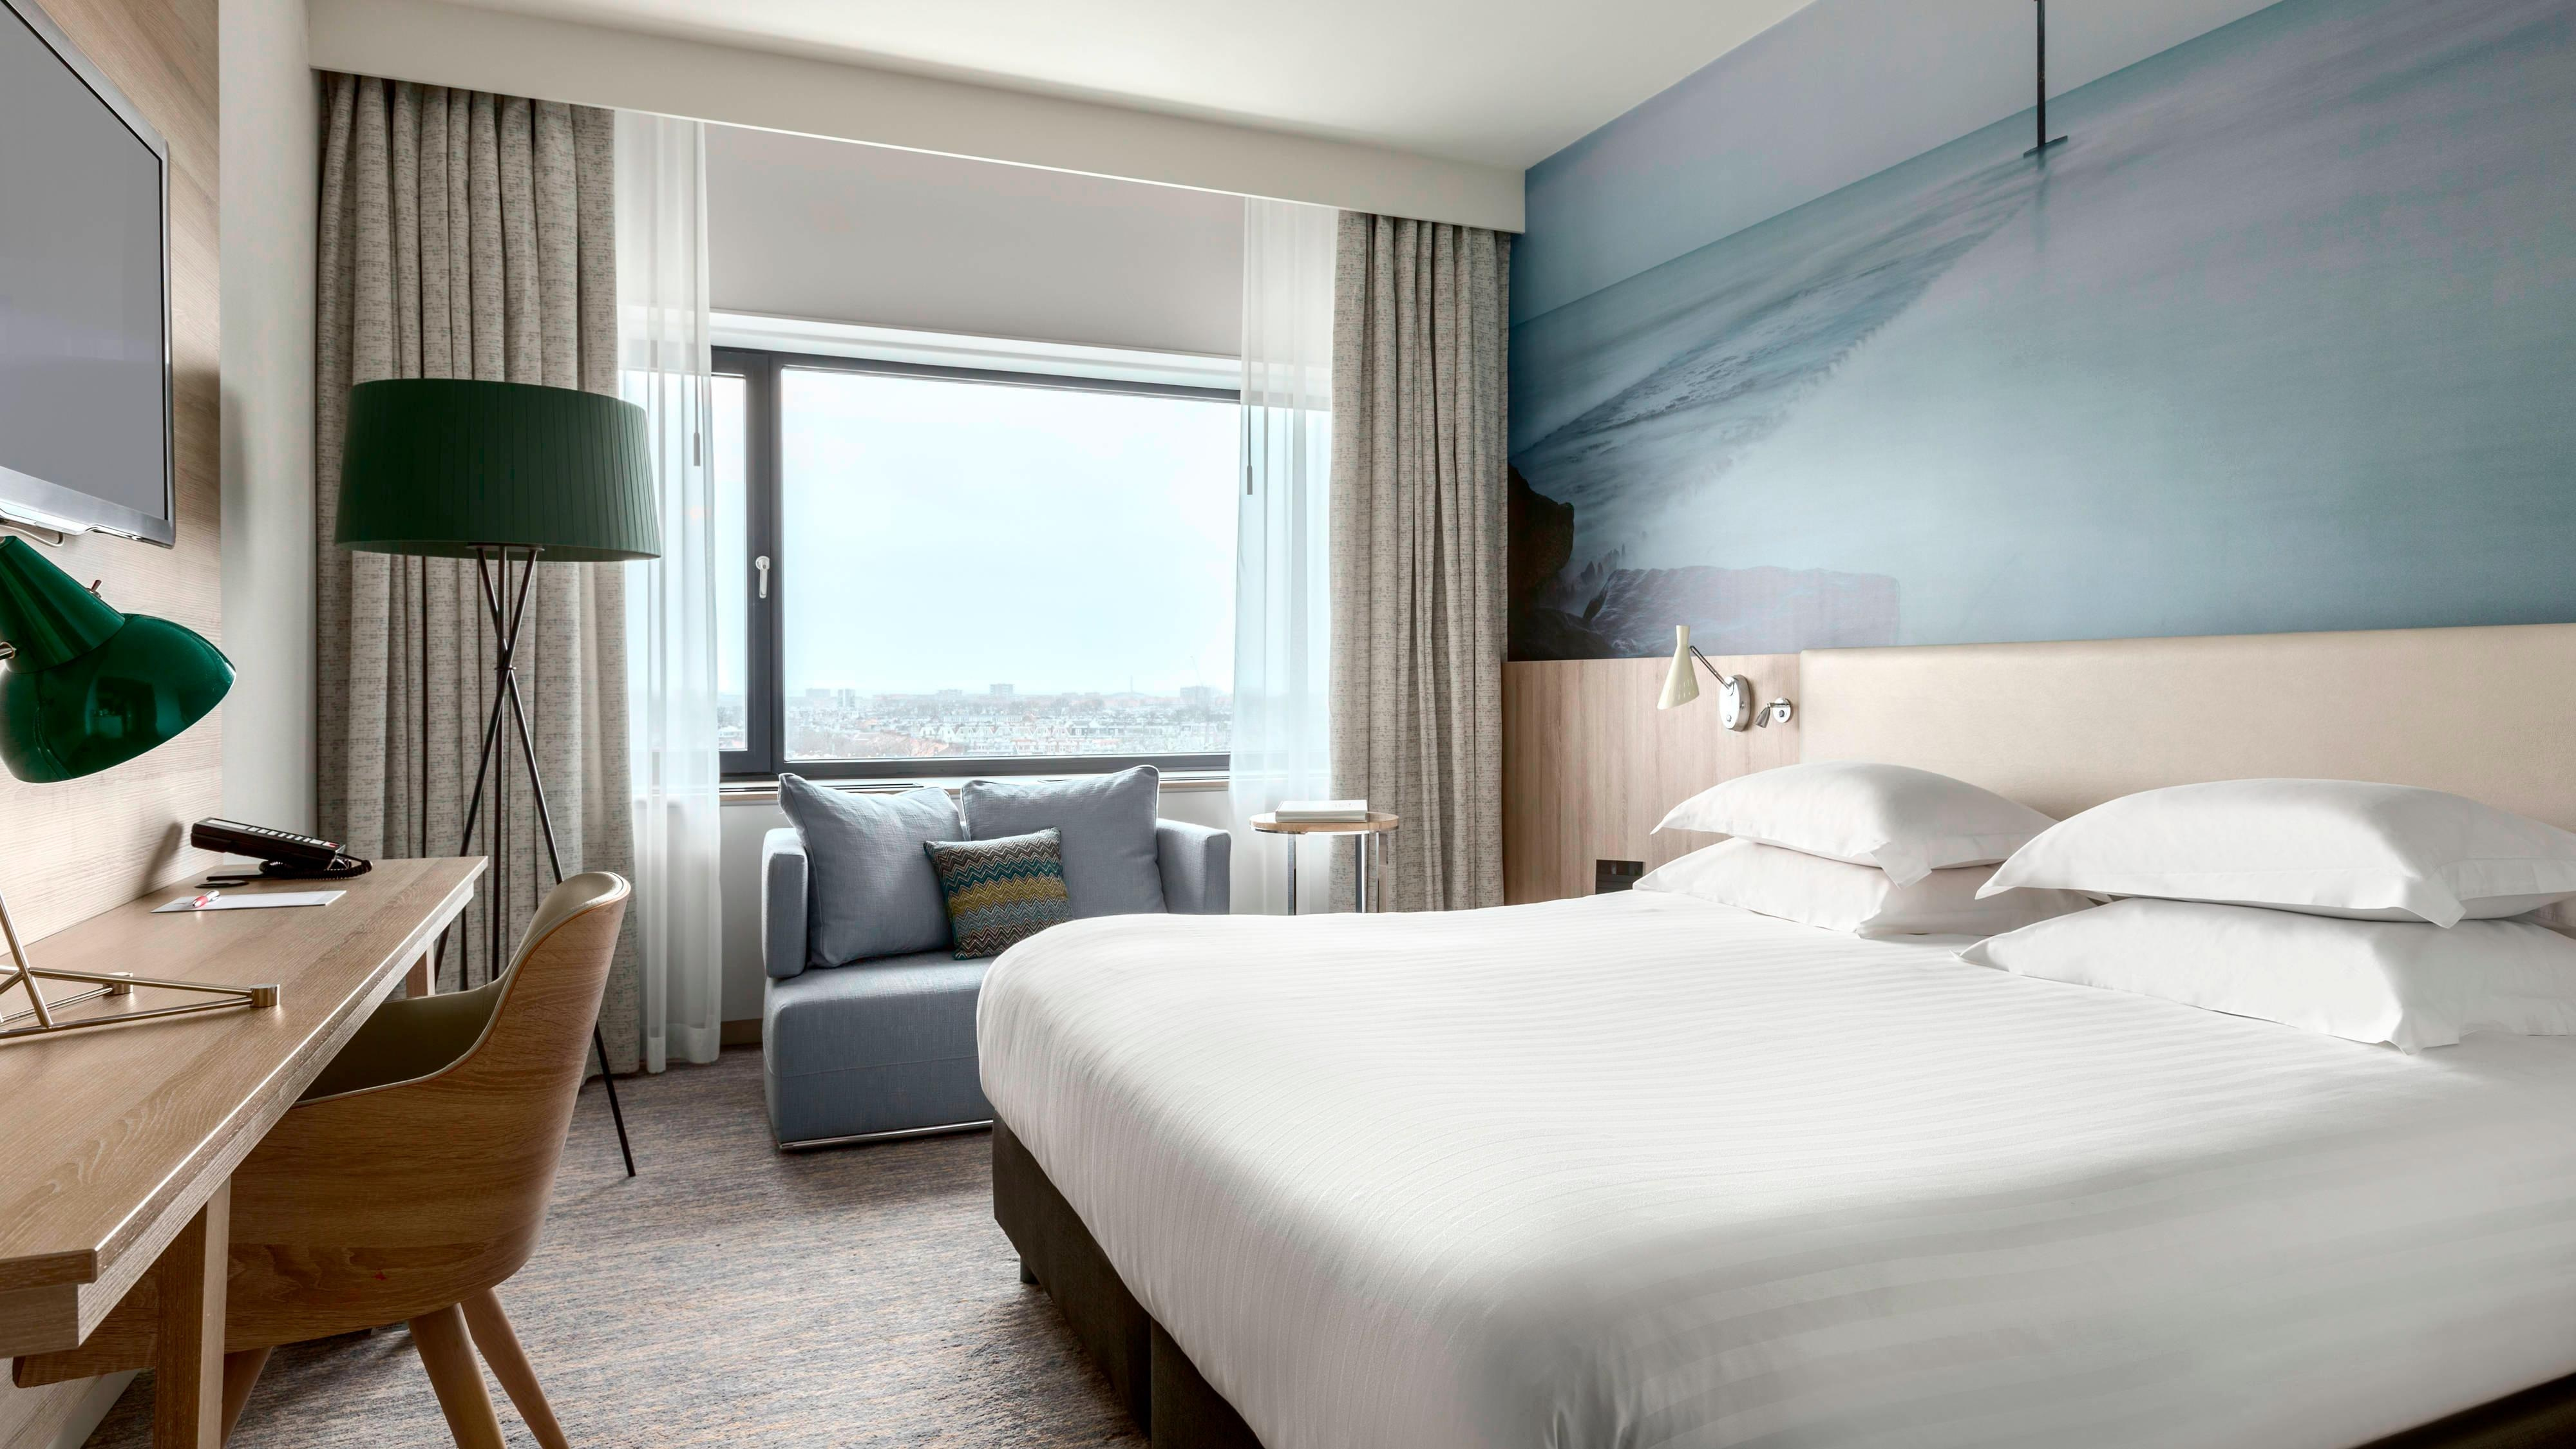 The Hague hotel accommodation